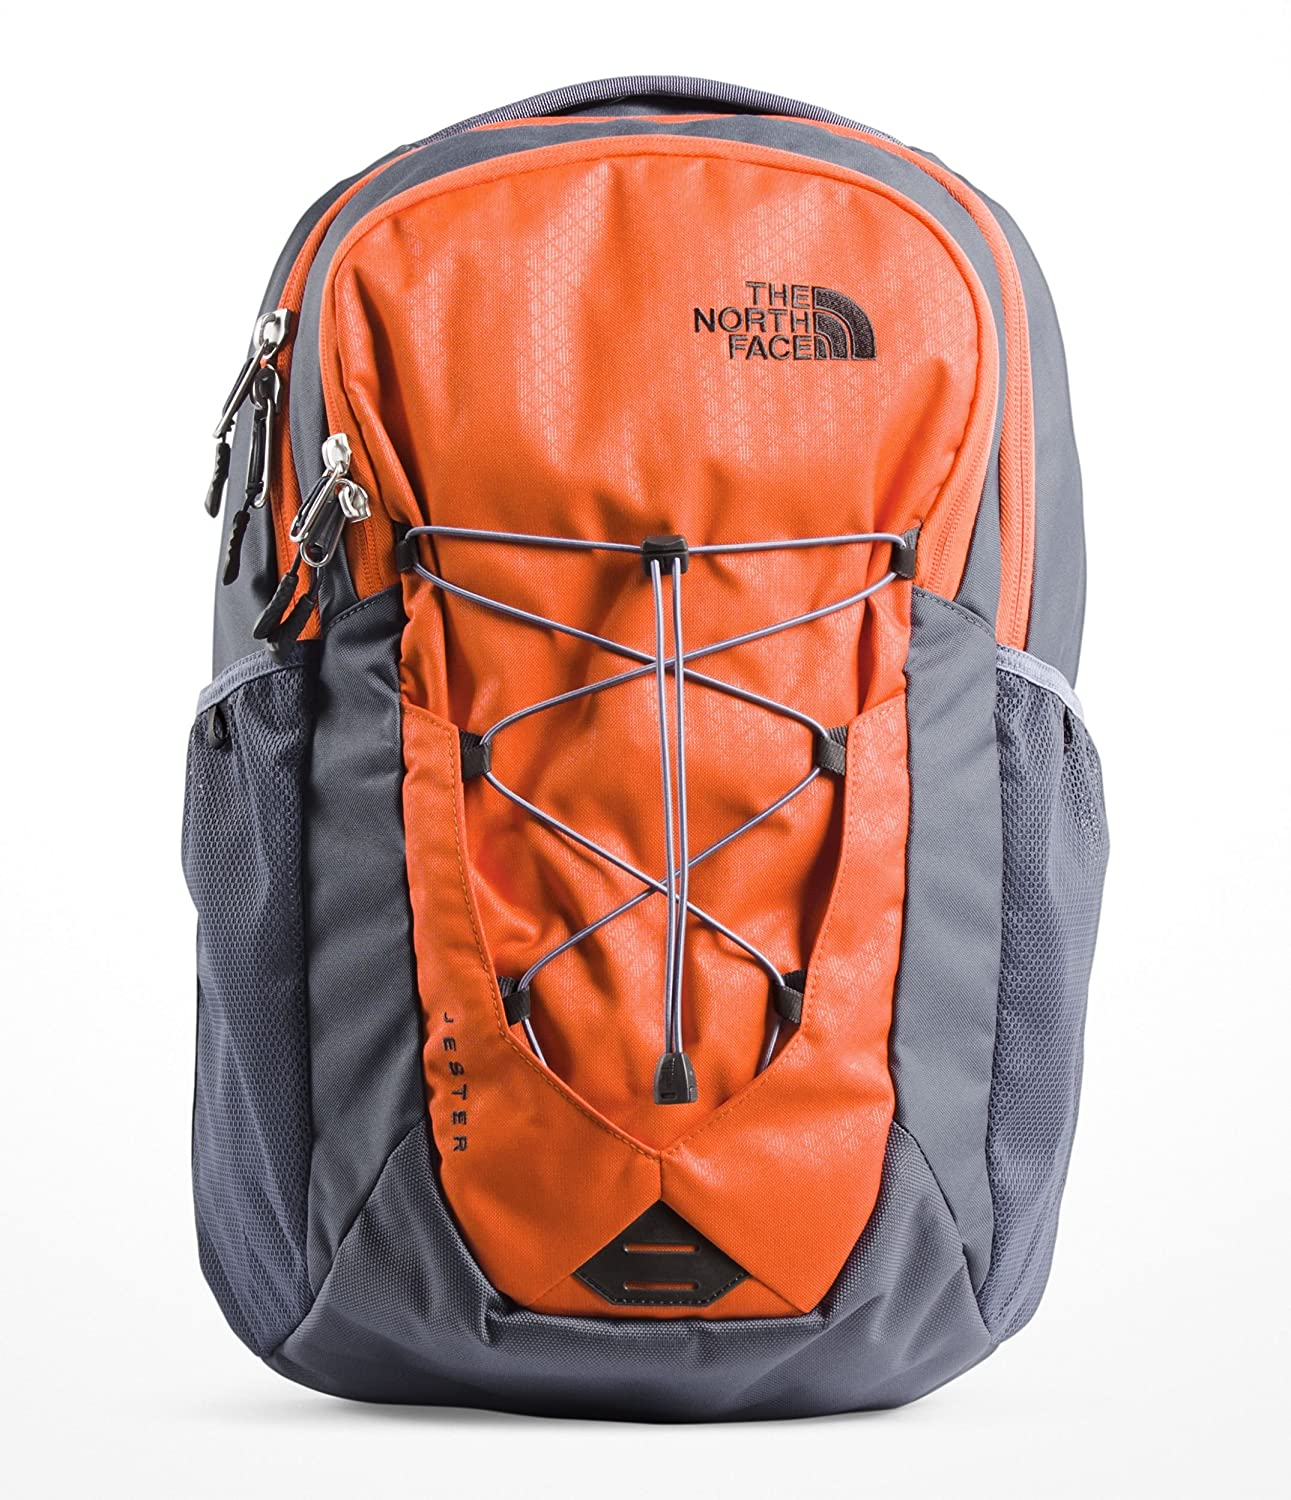 The North Face Jester Laptop Backpack- 15 T93KV75VK